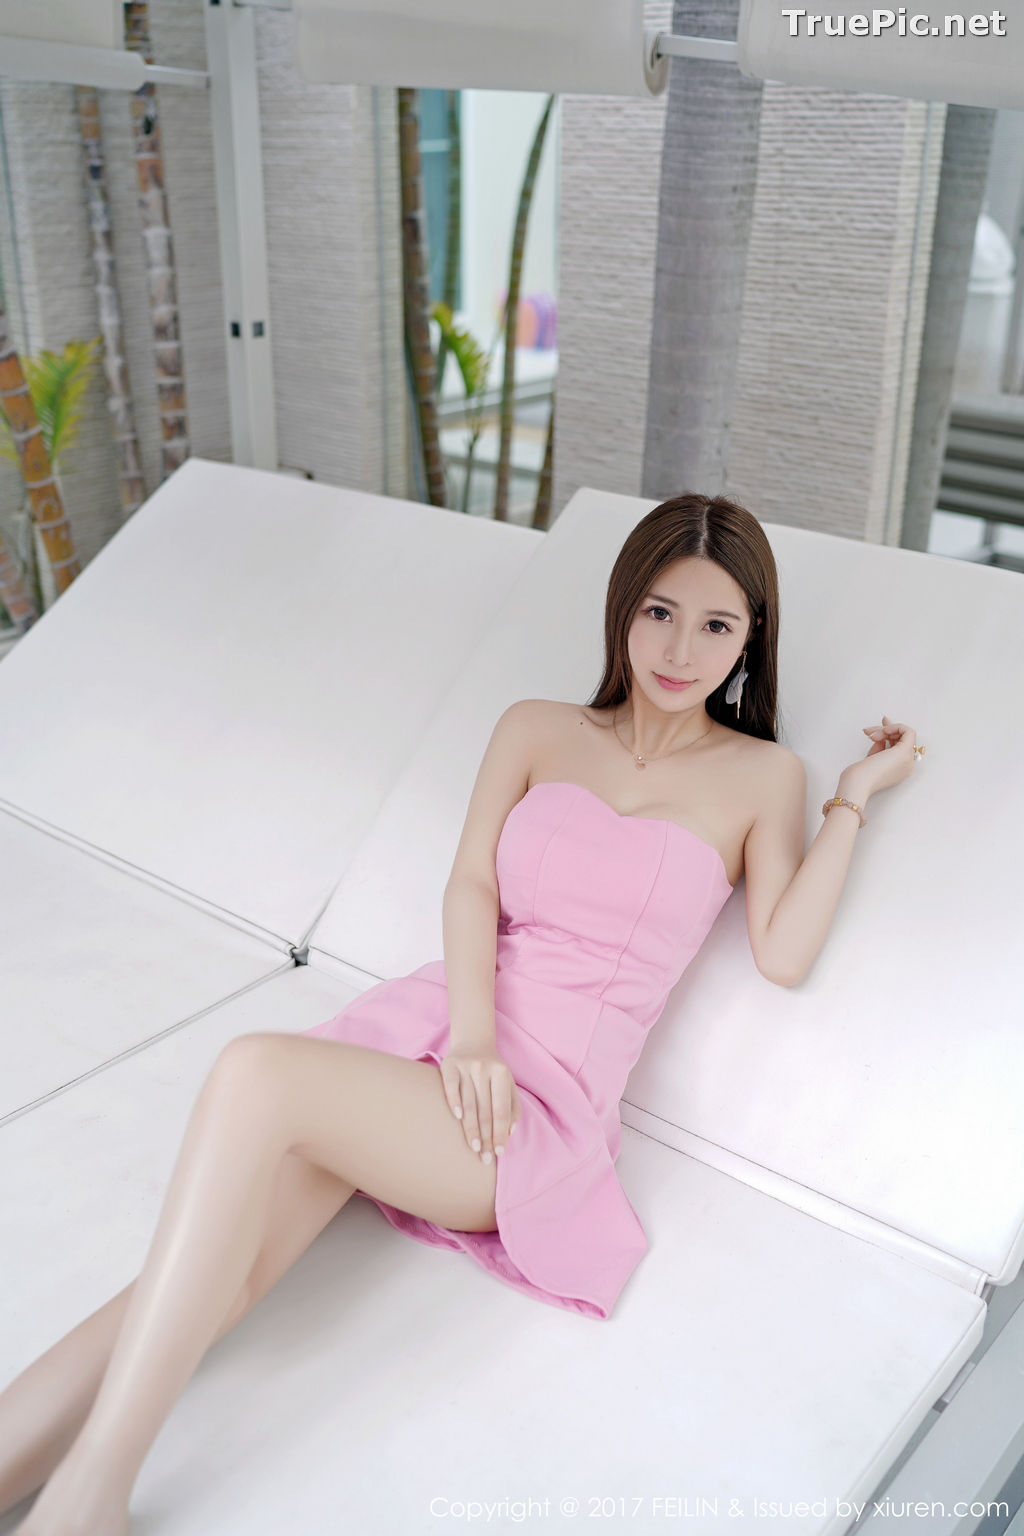 Image FEILIN Vol.105 - Chinese Pretty Model - Zhang Jing Yan (luna张静燕) - TruePic.net - Picture-8